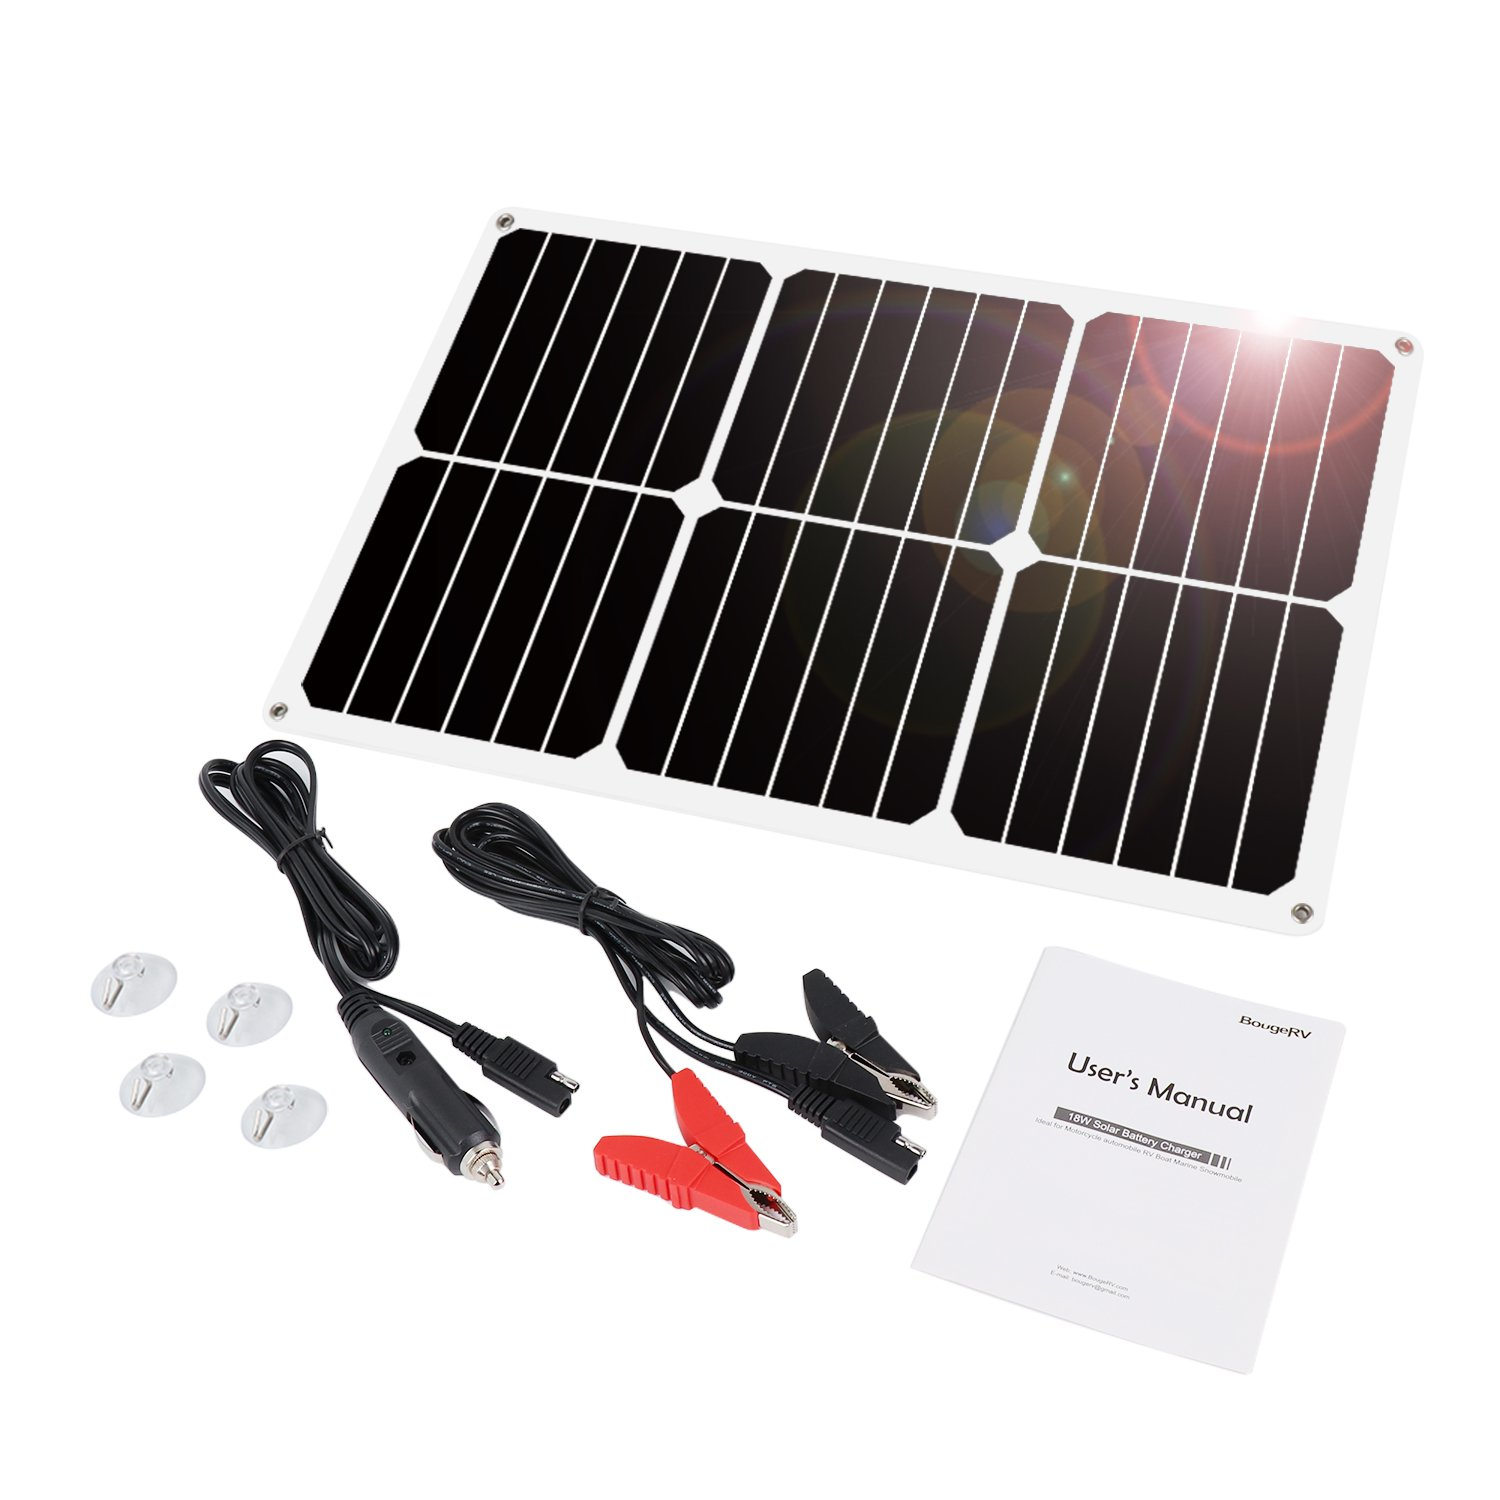 BougeRV 18W 18V 12V Solar Car Battery Charger SUNPOWER Portable Solar Panel Trickle Charger Maintainer with Cigarette Lighter Plug, Battery Charging Clip Line for Automobile Motorcycle RV Boat Tractor